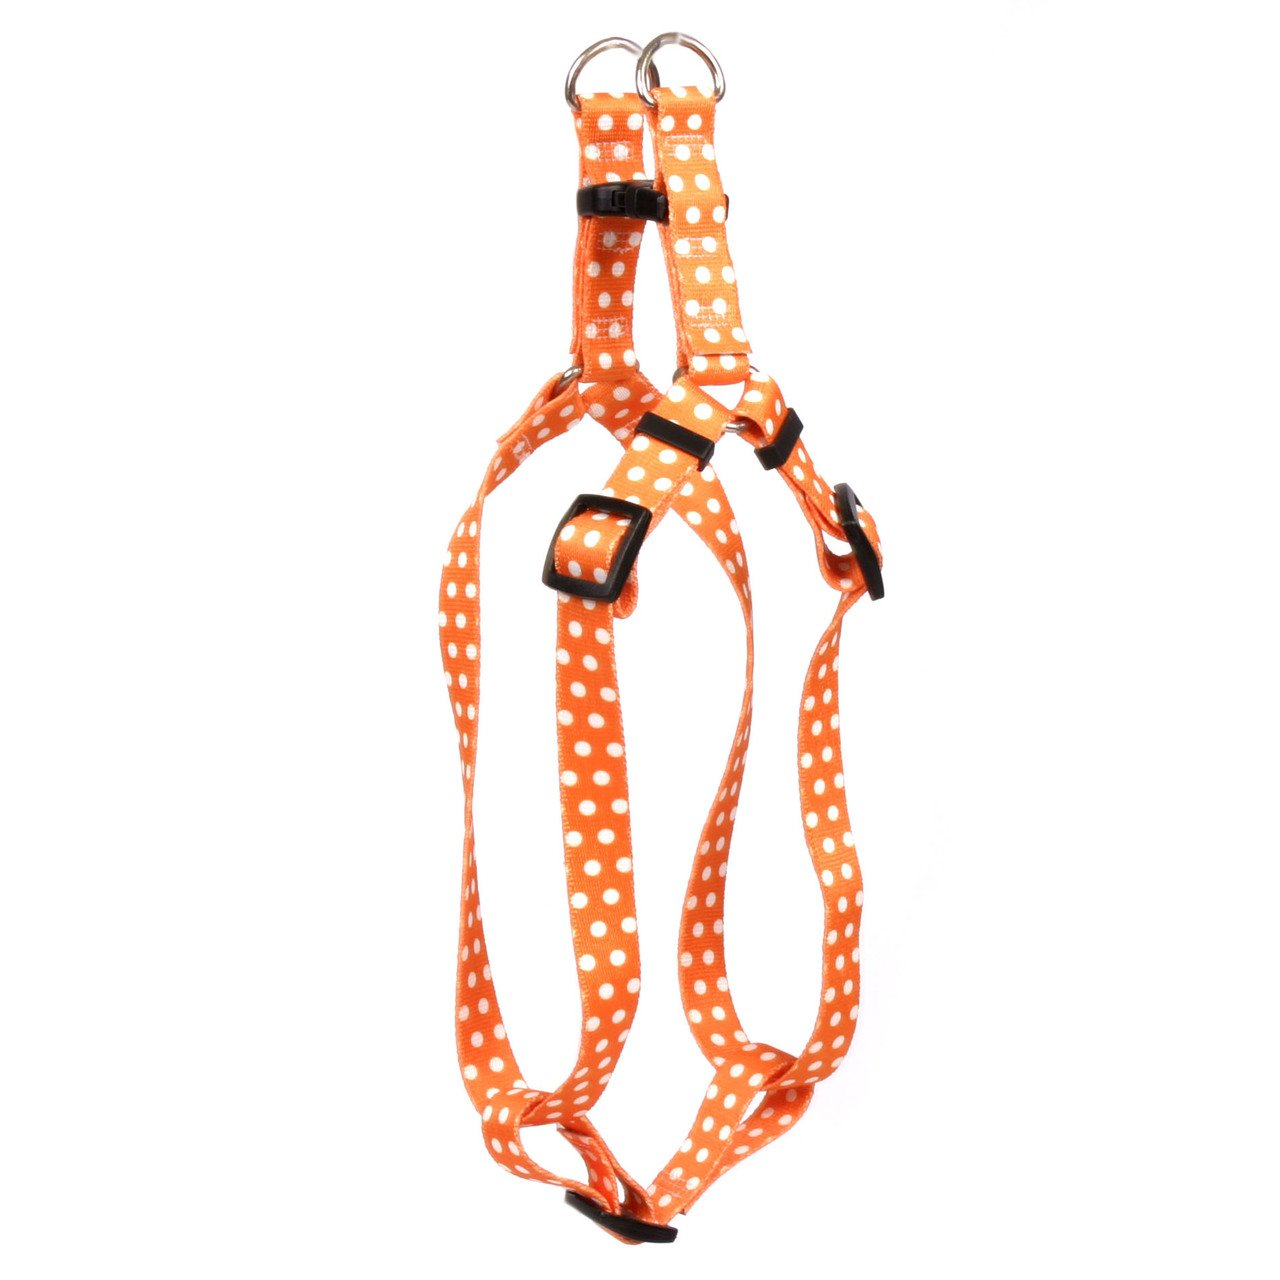 Yellow Dog Design Orange Polka Dot Step-in Dog Harness, X-Small-3/8 Wide and fits Chest of 4.5 to 9'' by Yellow Dog Design